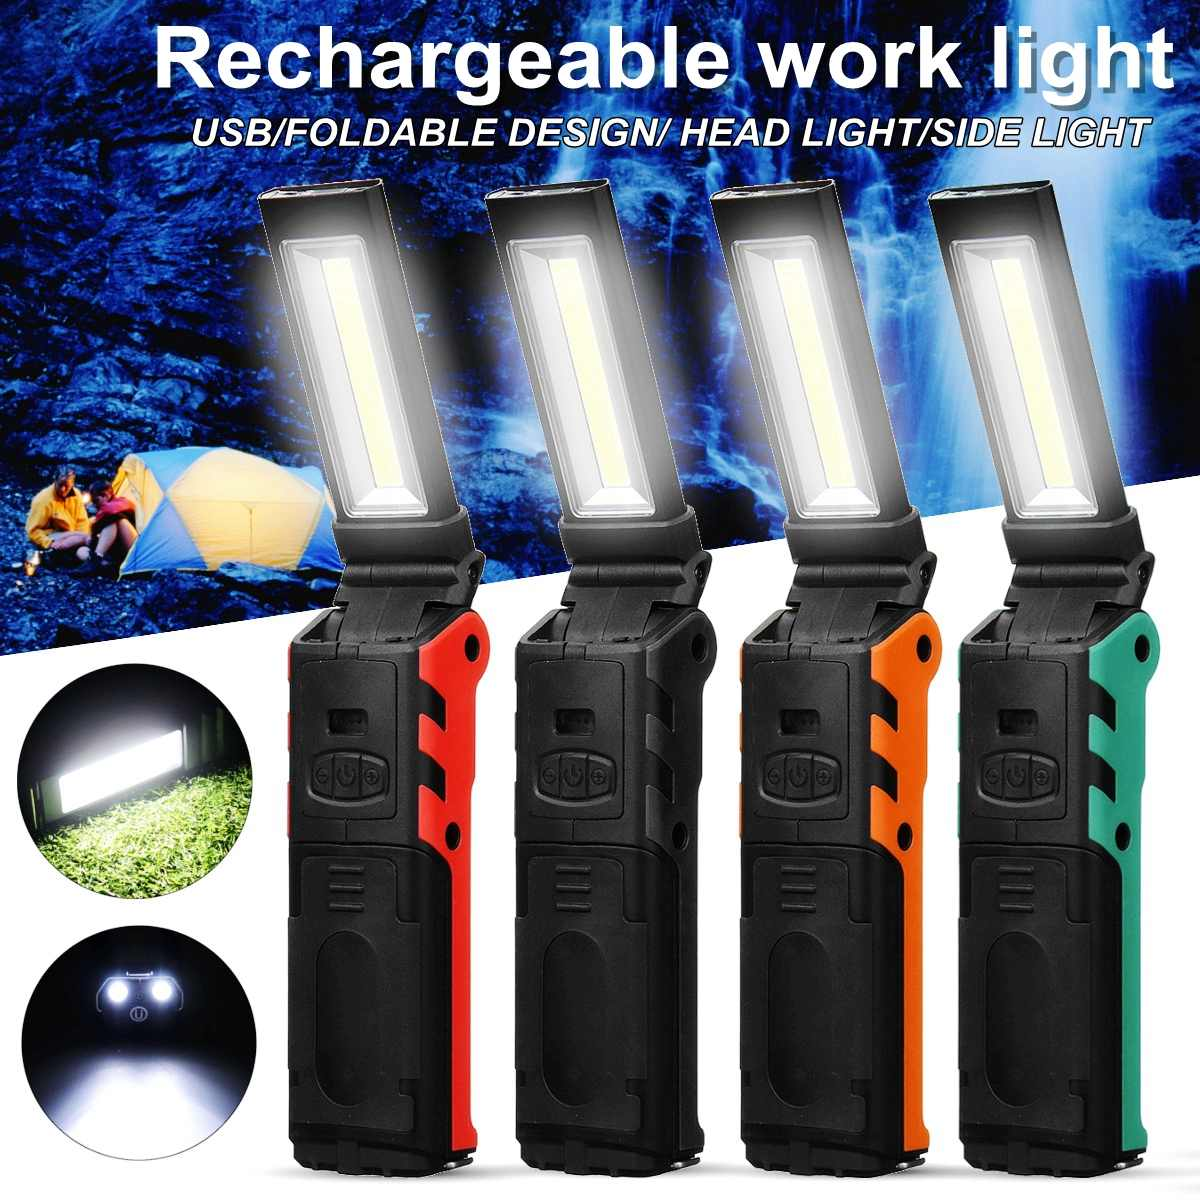 ESEN106 Cob Portable Spotlight Work Light Led Usb Rechargeable Power Bank 2 Modes Hook Case Magnetic 18650 Battery Waterproof